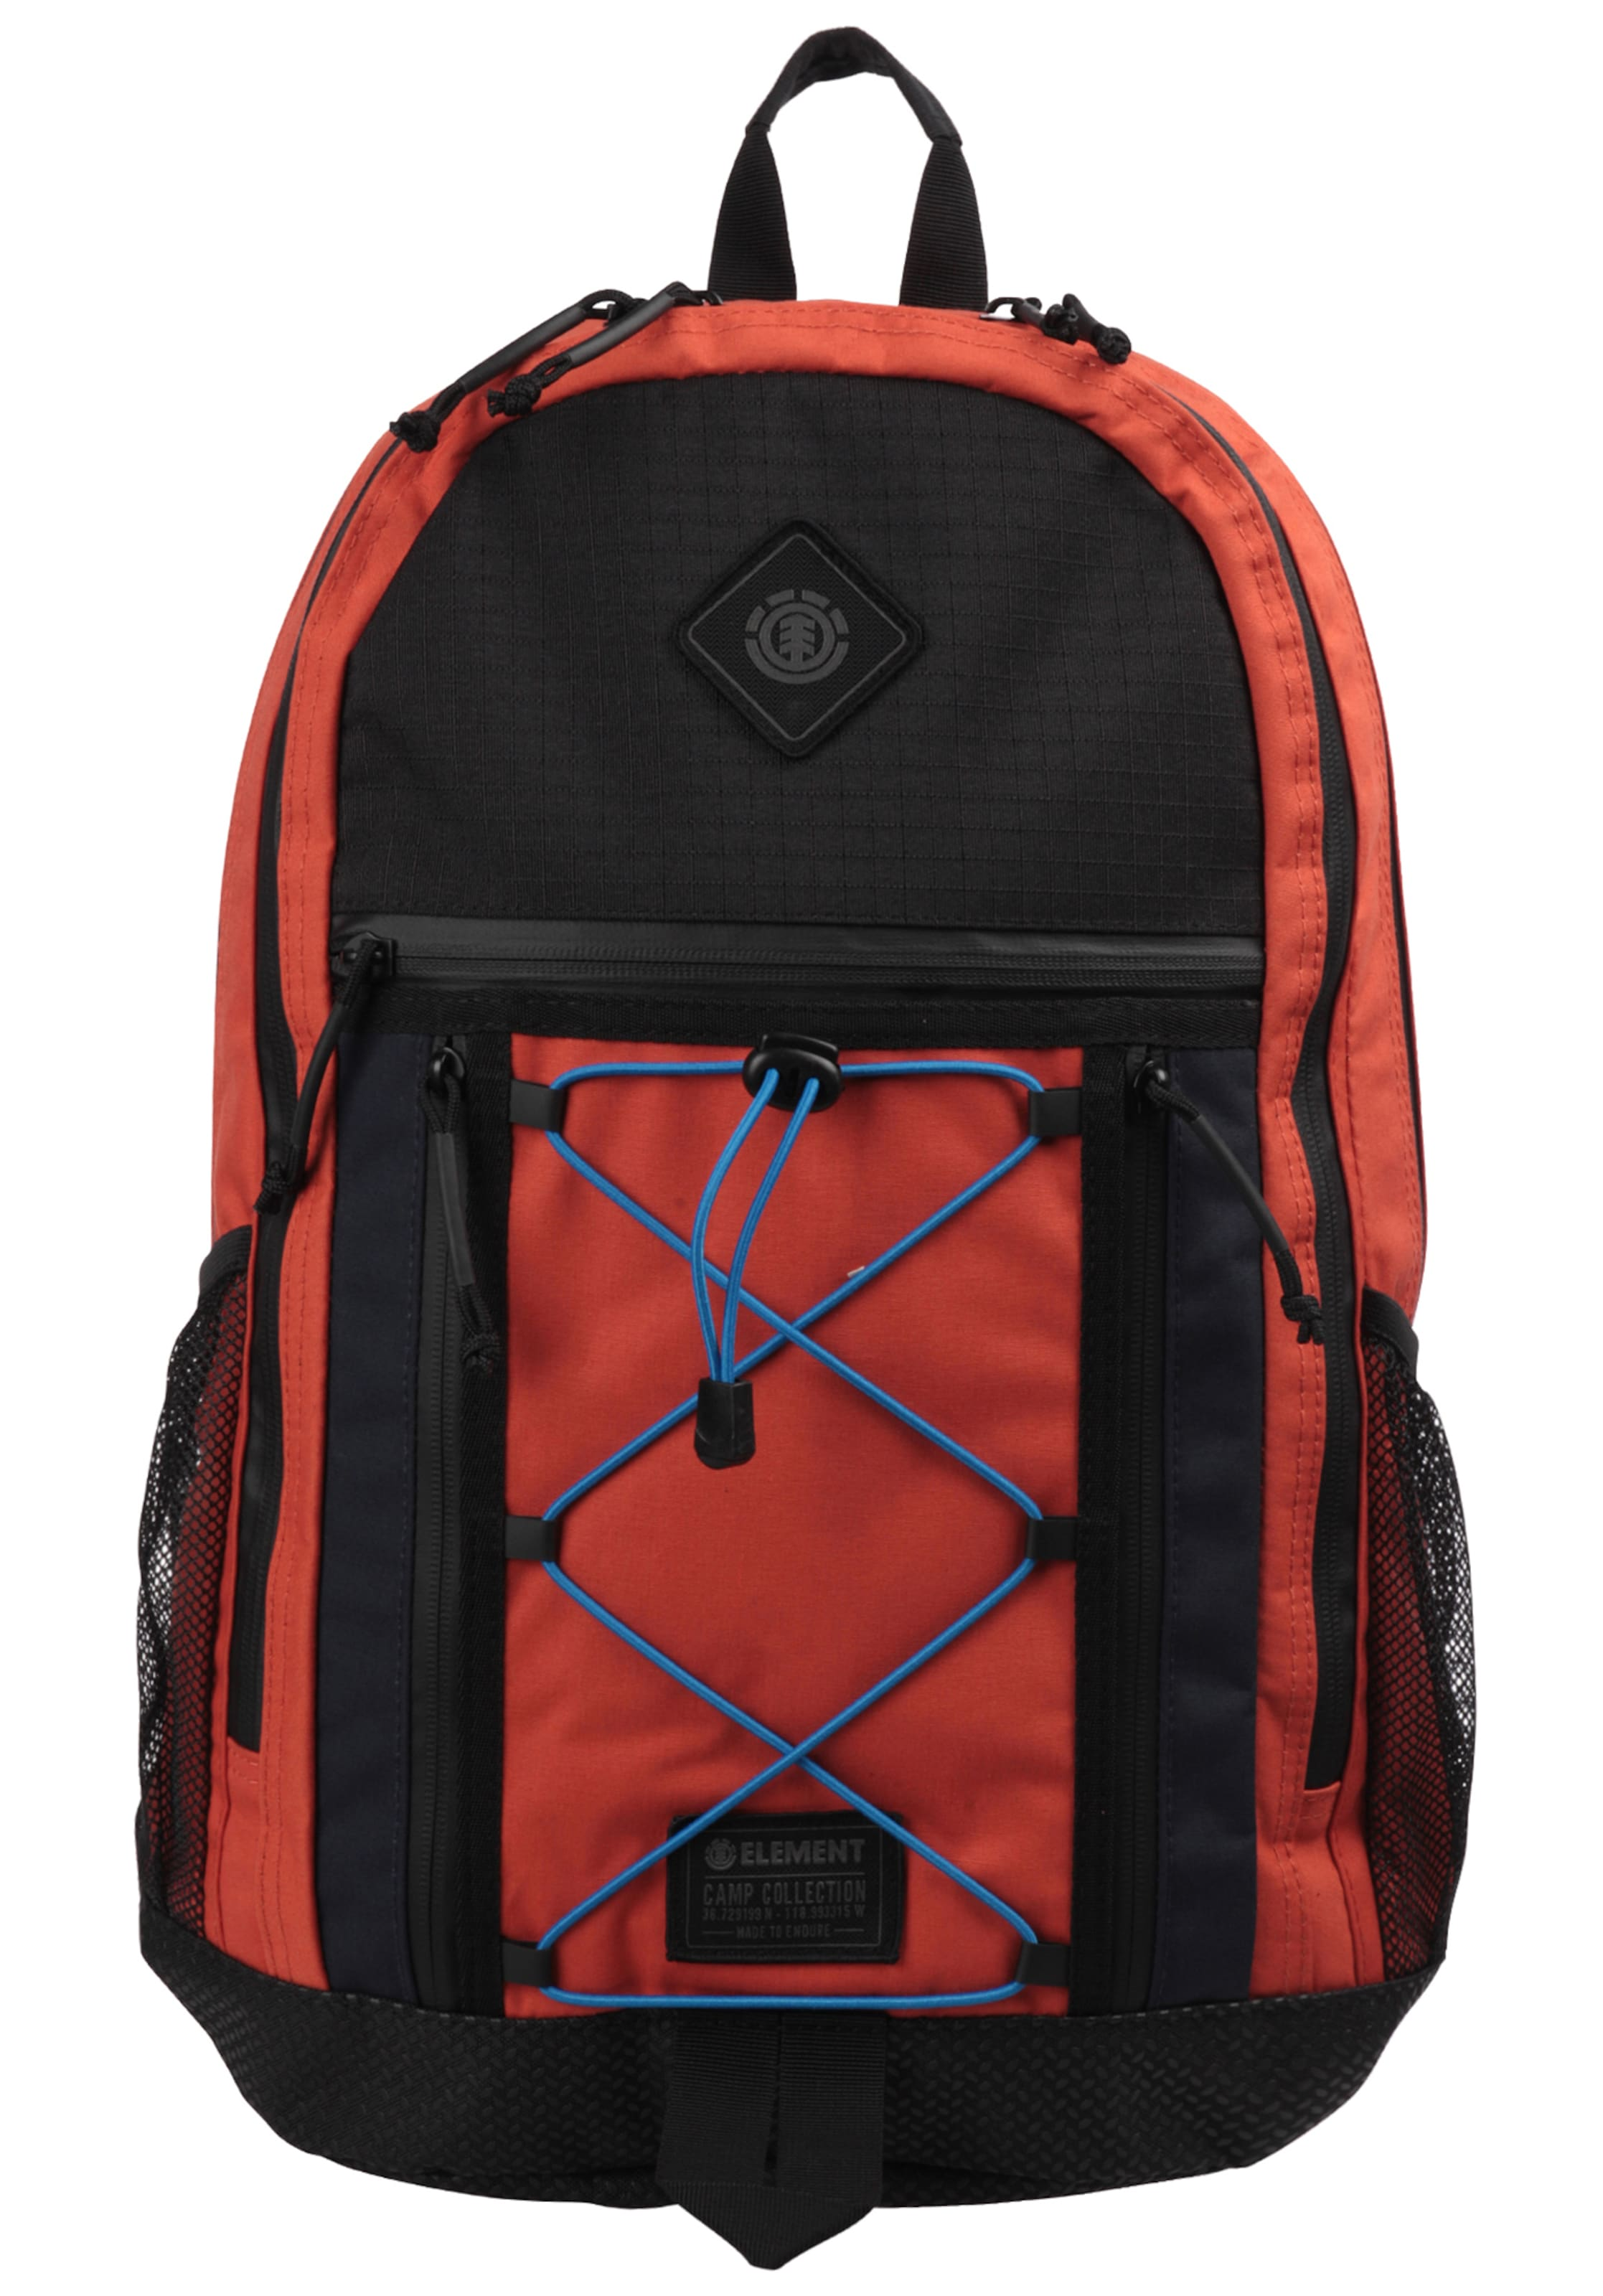 Element Rucksack' In OrangeSchwarz Cypress Outward' tBrQshdoCx